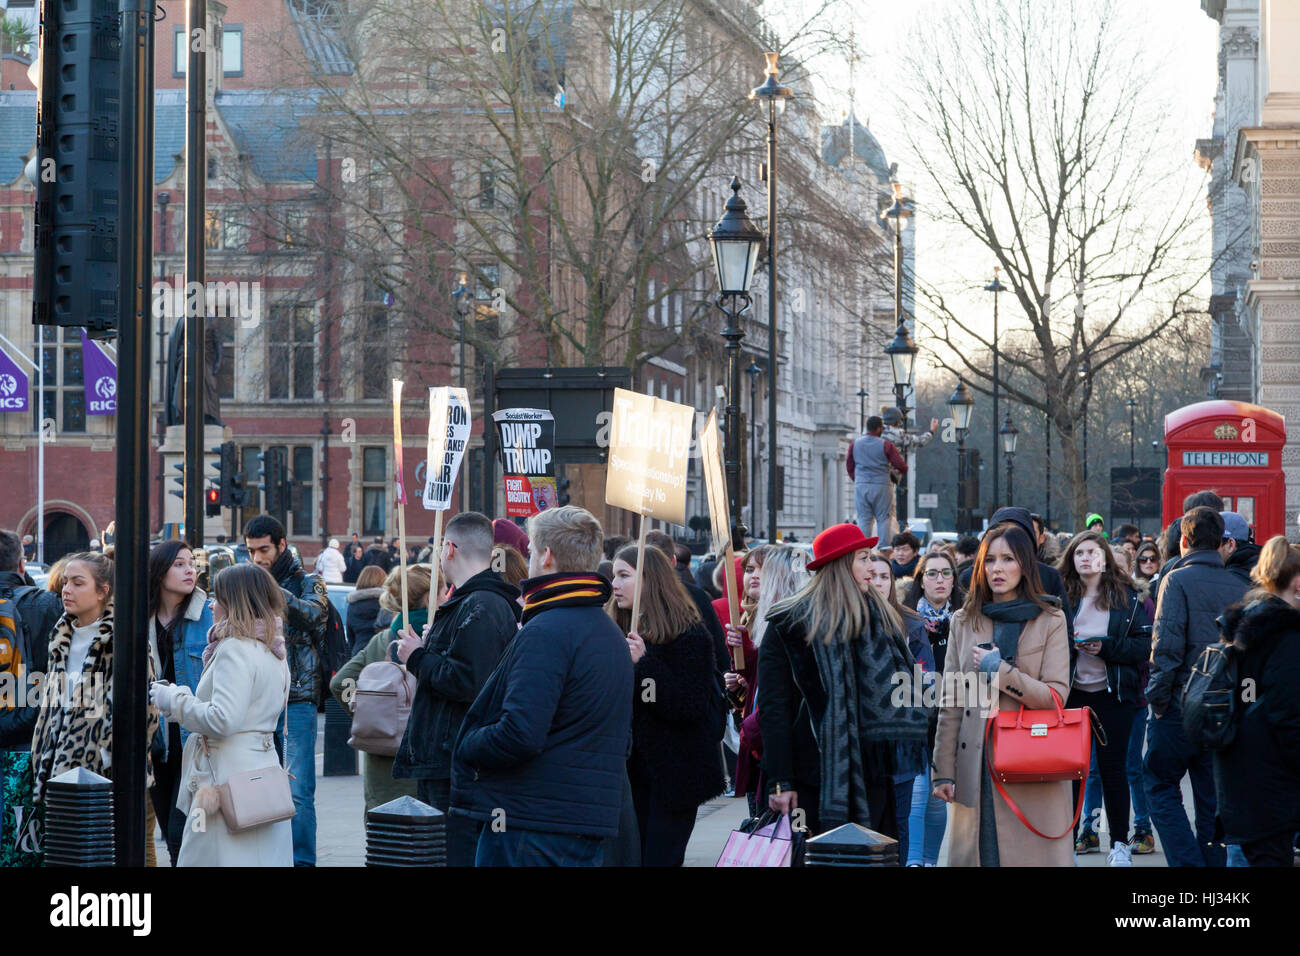 Demonstrators in London on January 21st, protesting against the inauguration  of Donald Trump as US President. - Stock Image